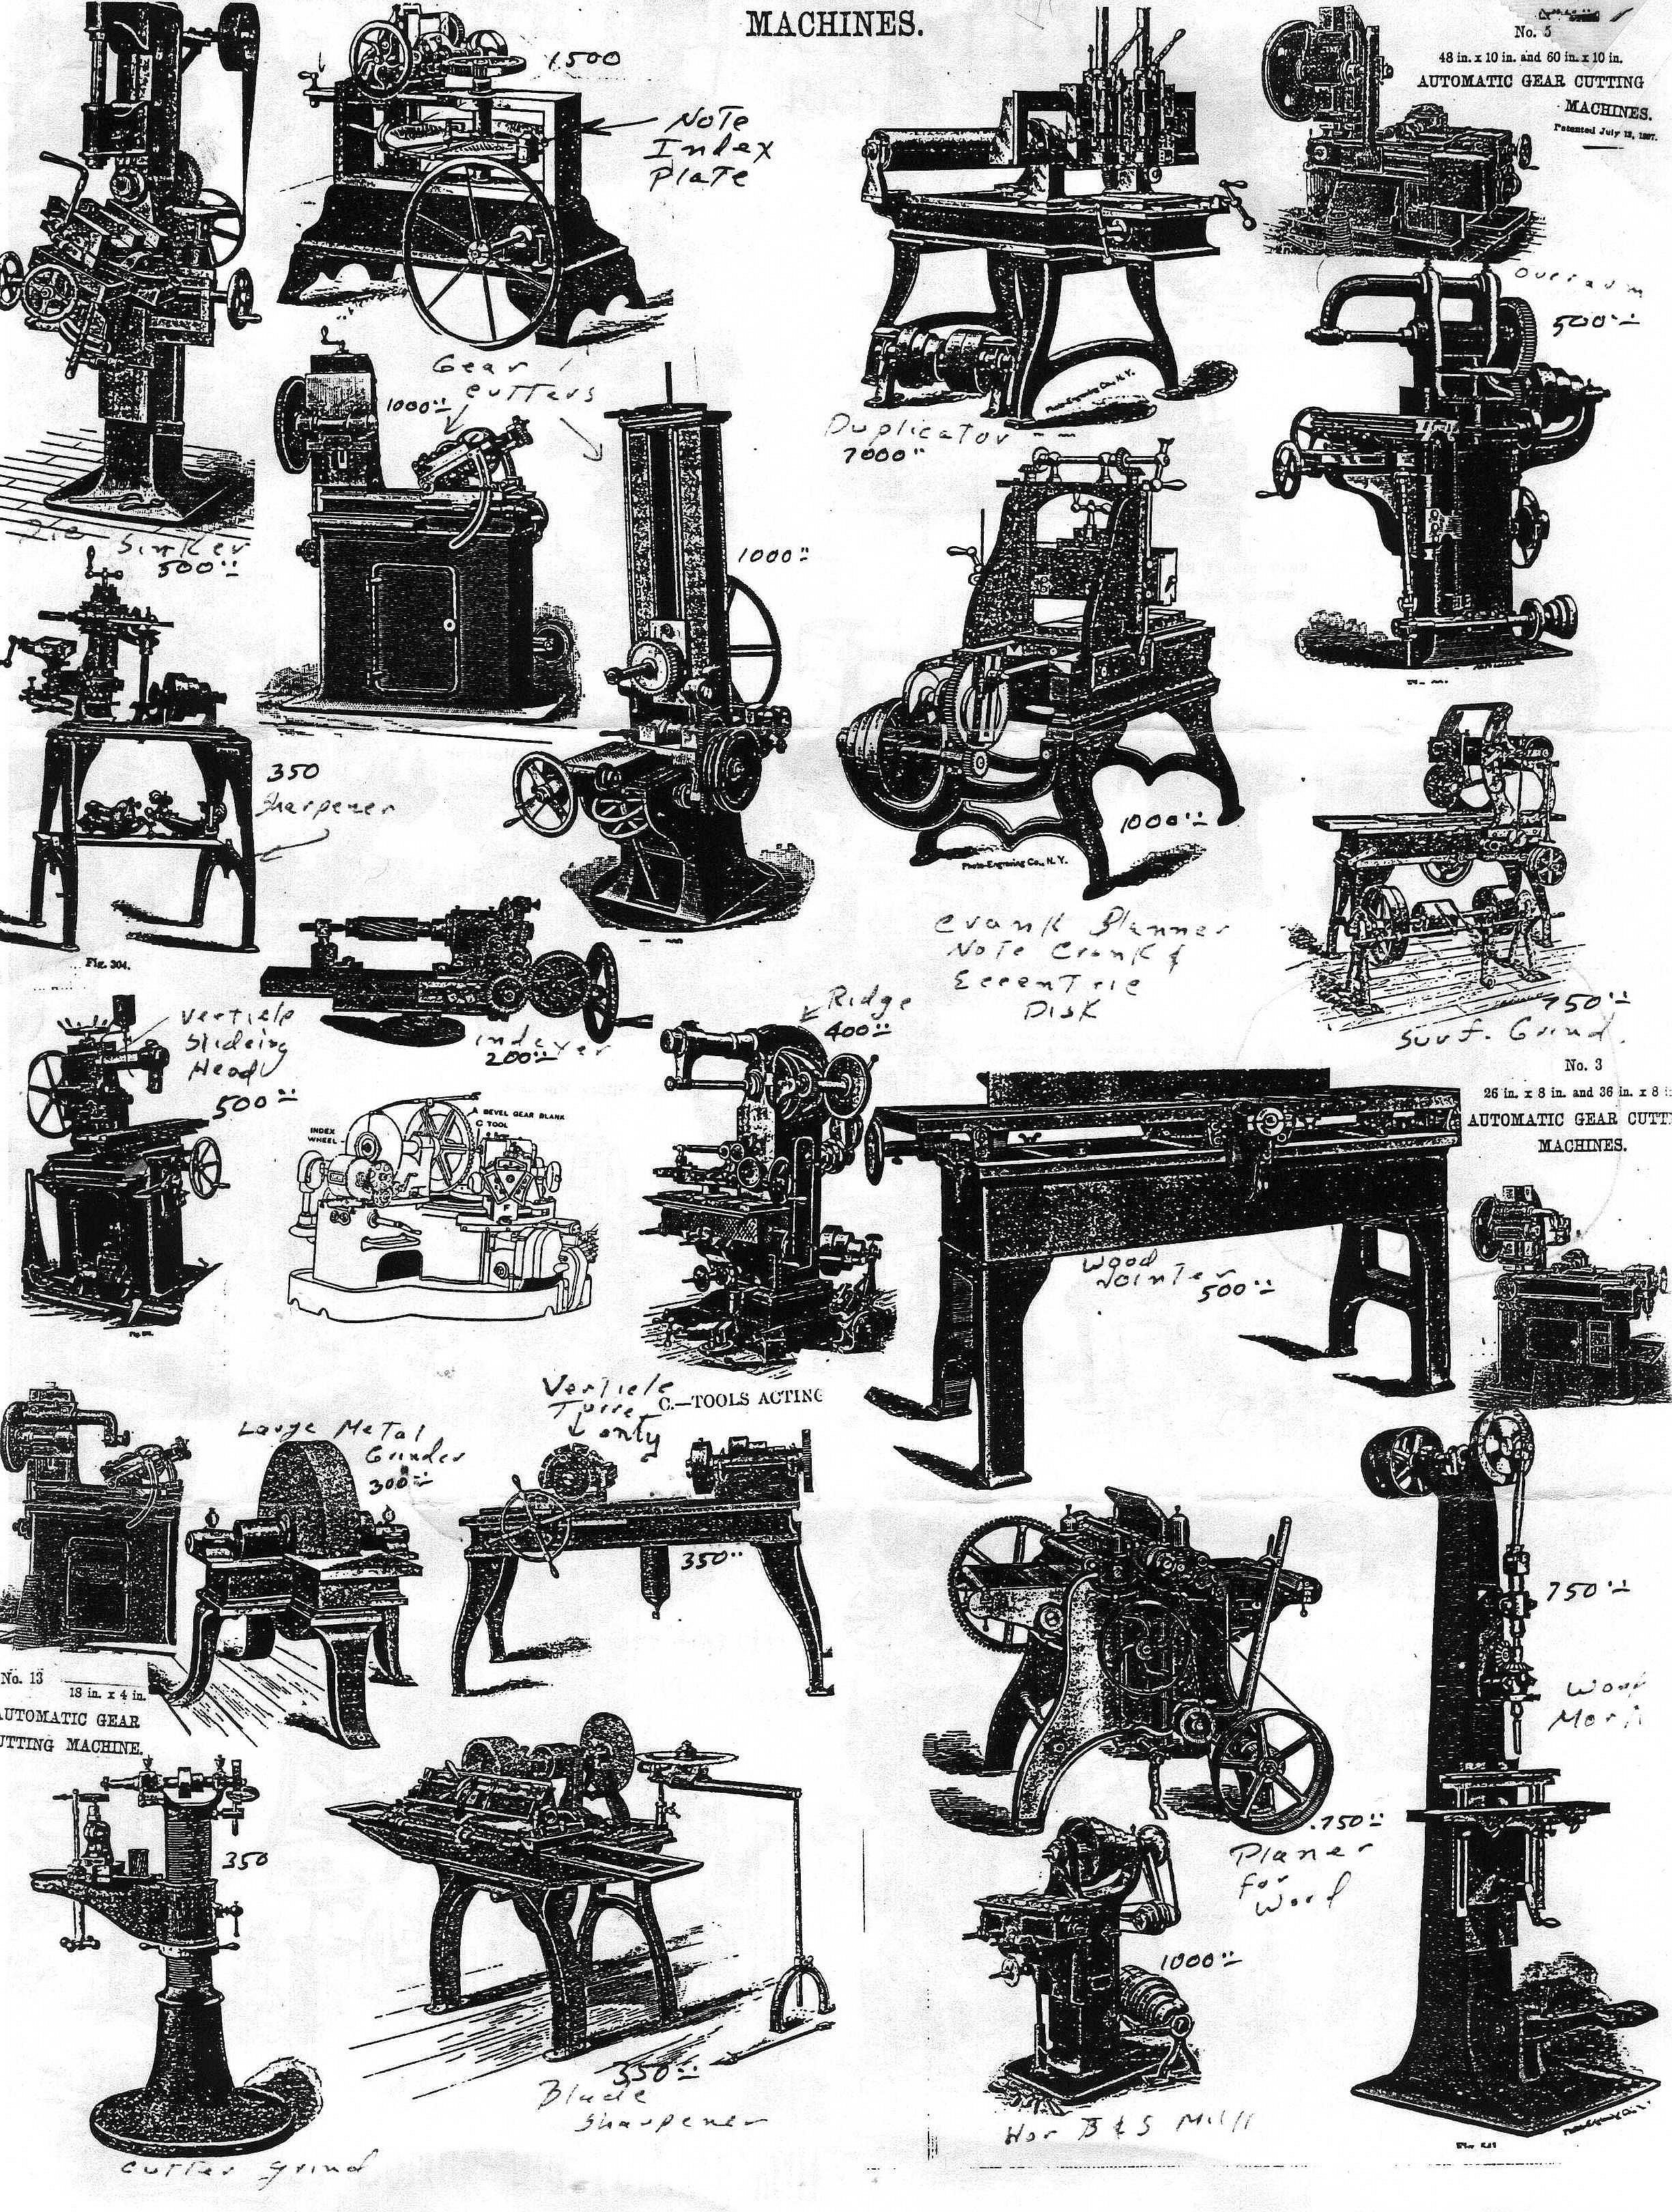 Pin By Evan Roark On Machines In 2019 Antique Tools